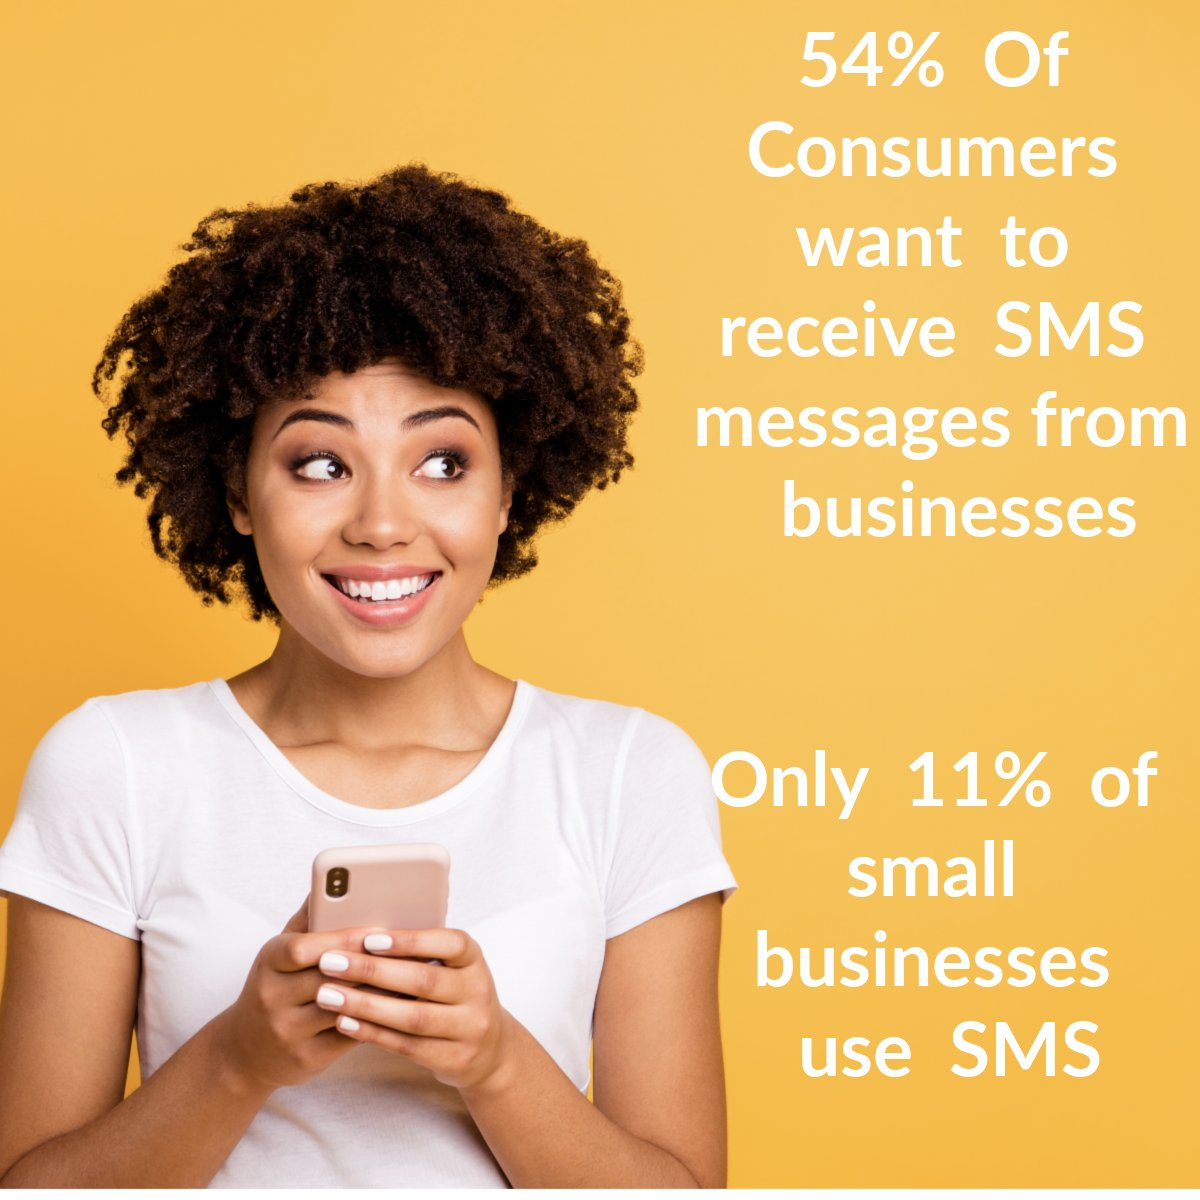 Give your customers what they want. #sms #smsmarketing #textmarketing<br>http://pic.twitter.com/tQcRNQ2LfX